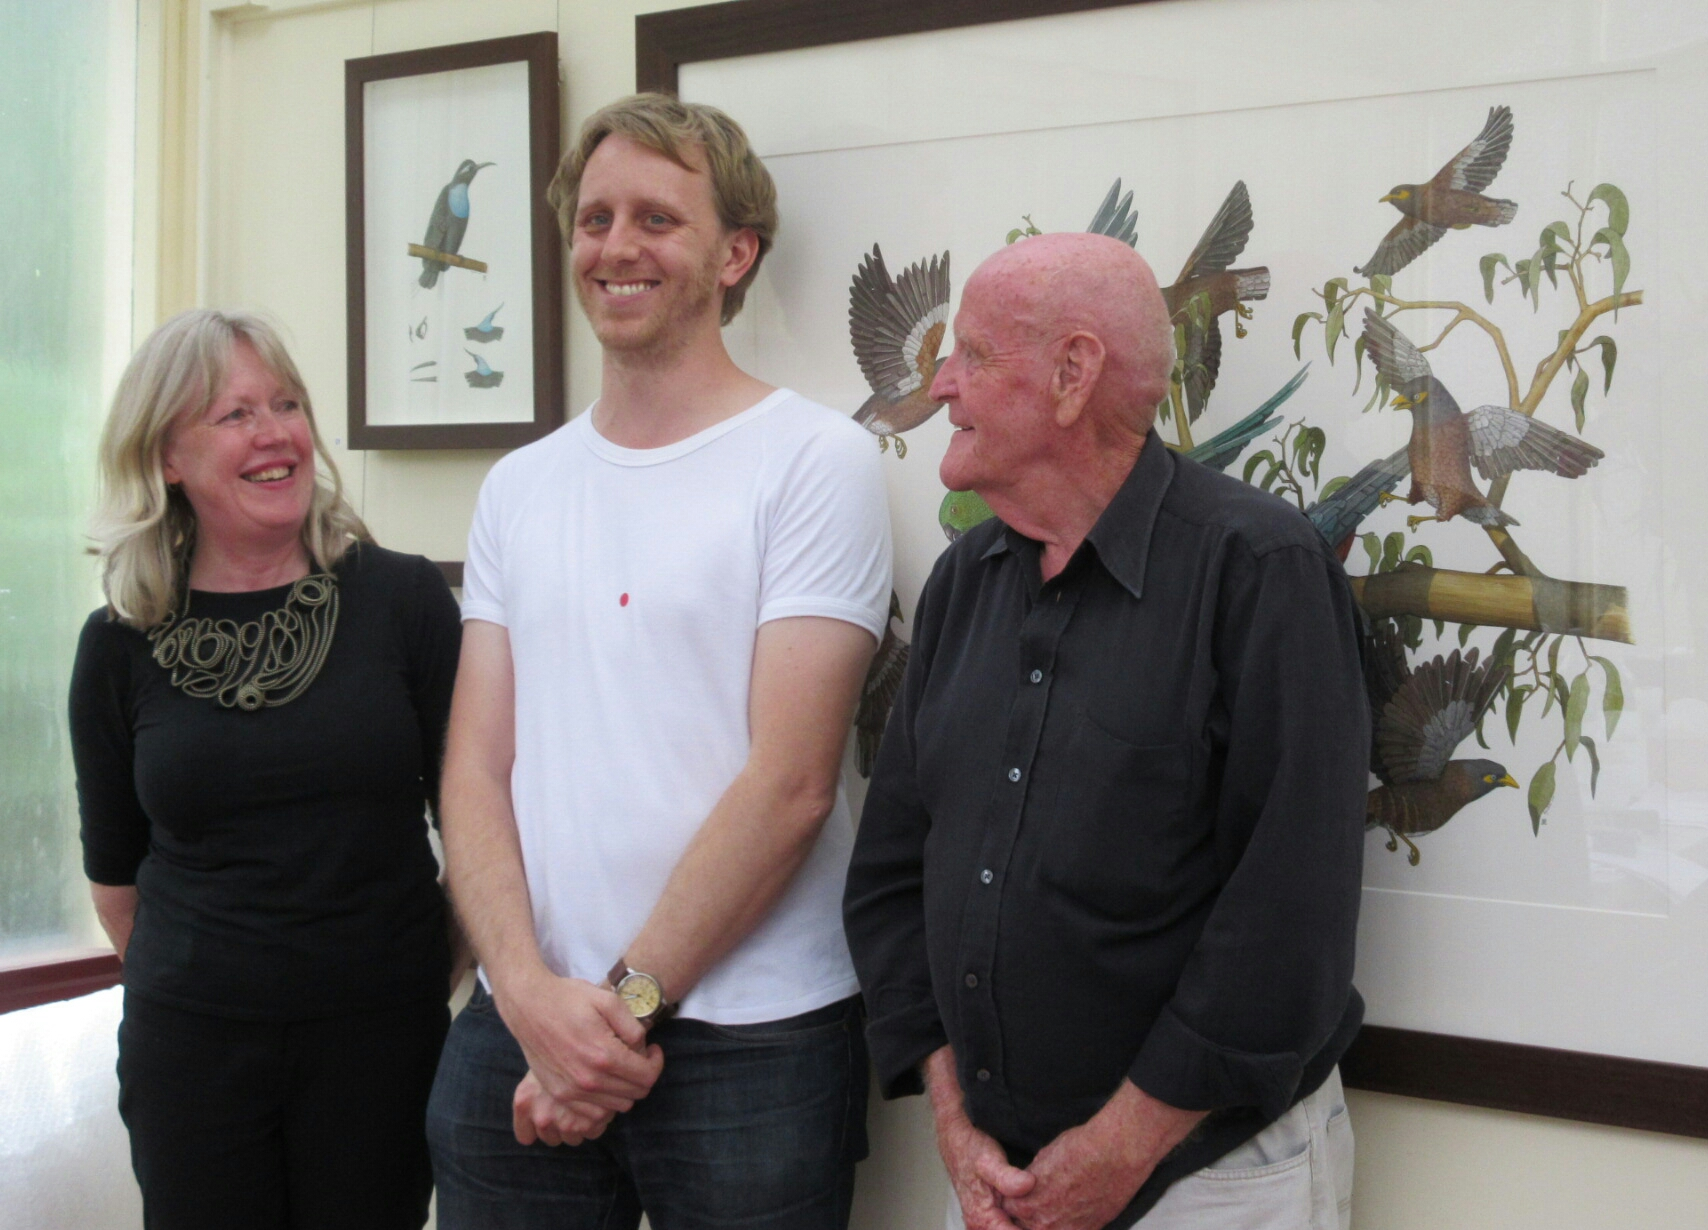 Sue Grose-Hodge, Angus Fisher and Graeme Chambers at opening of 'Animal, Vegetable, Mineral?' (15/11/2014)